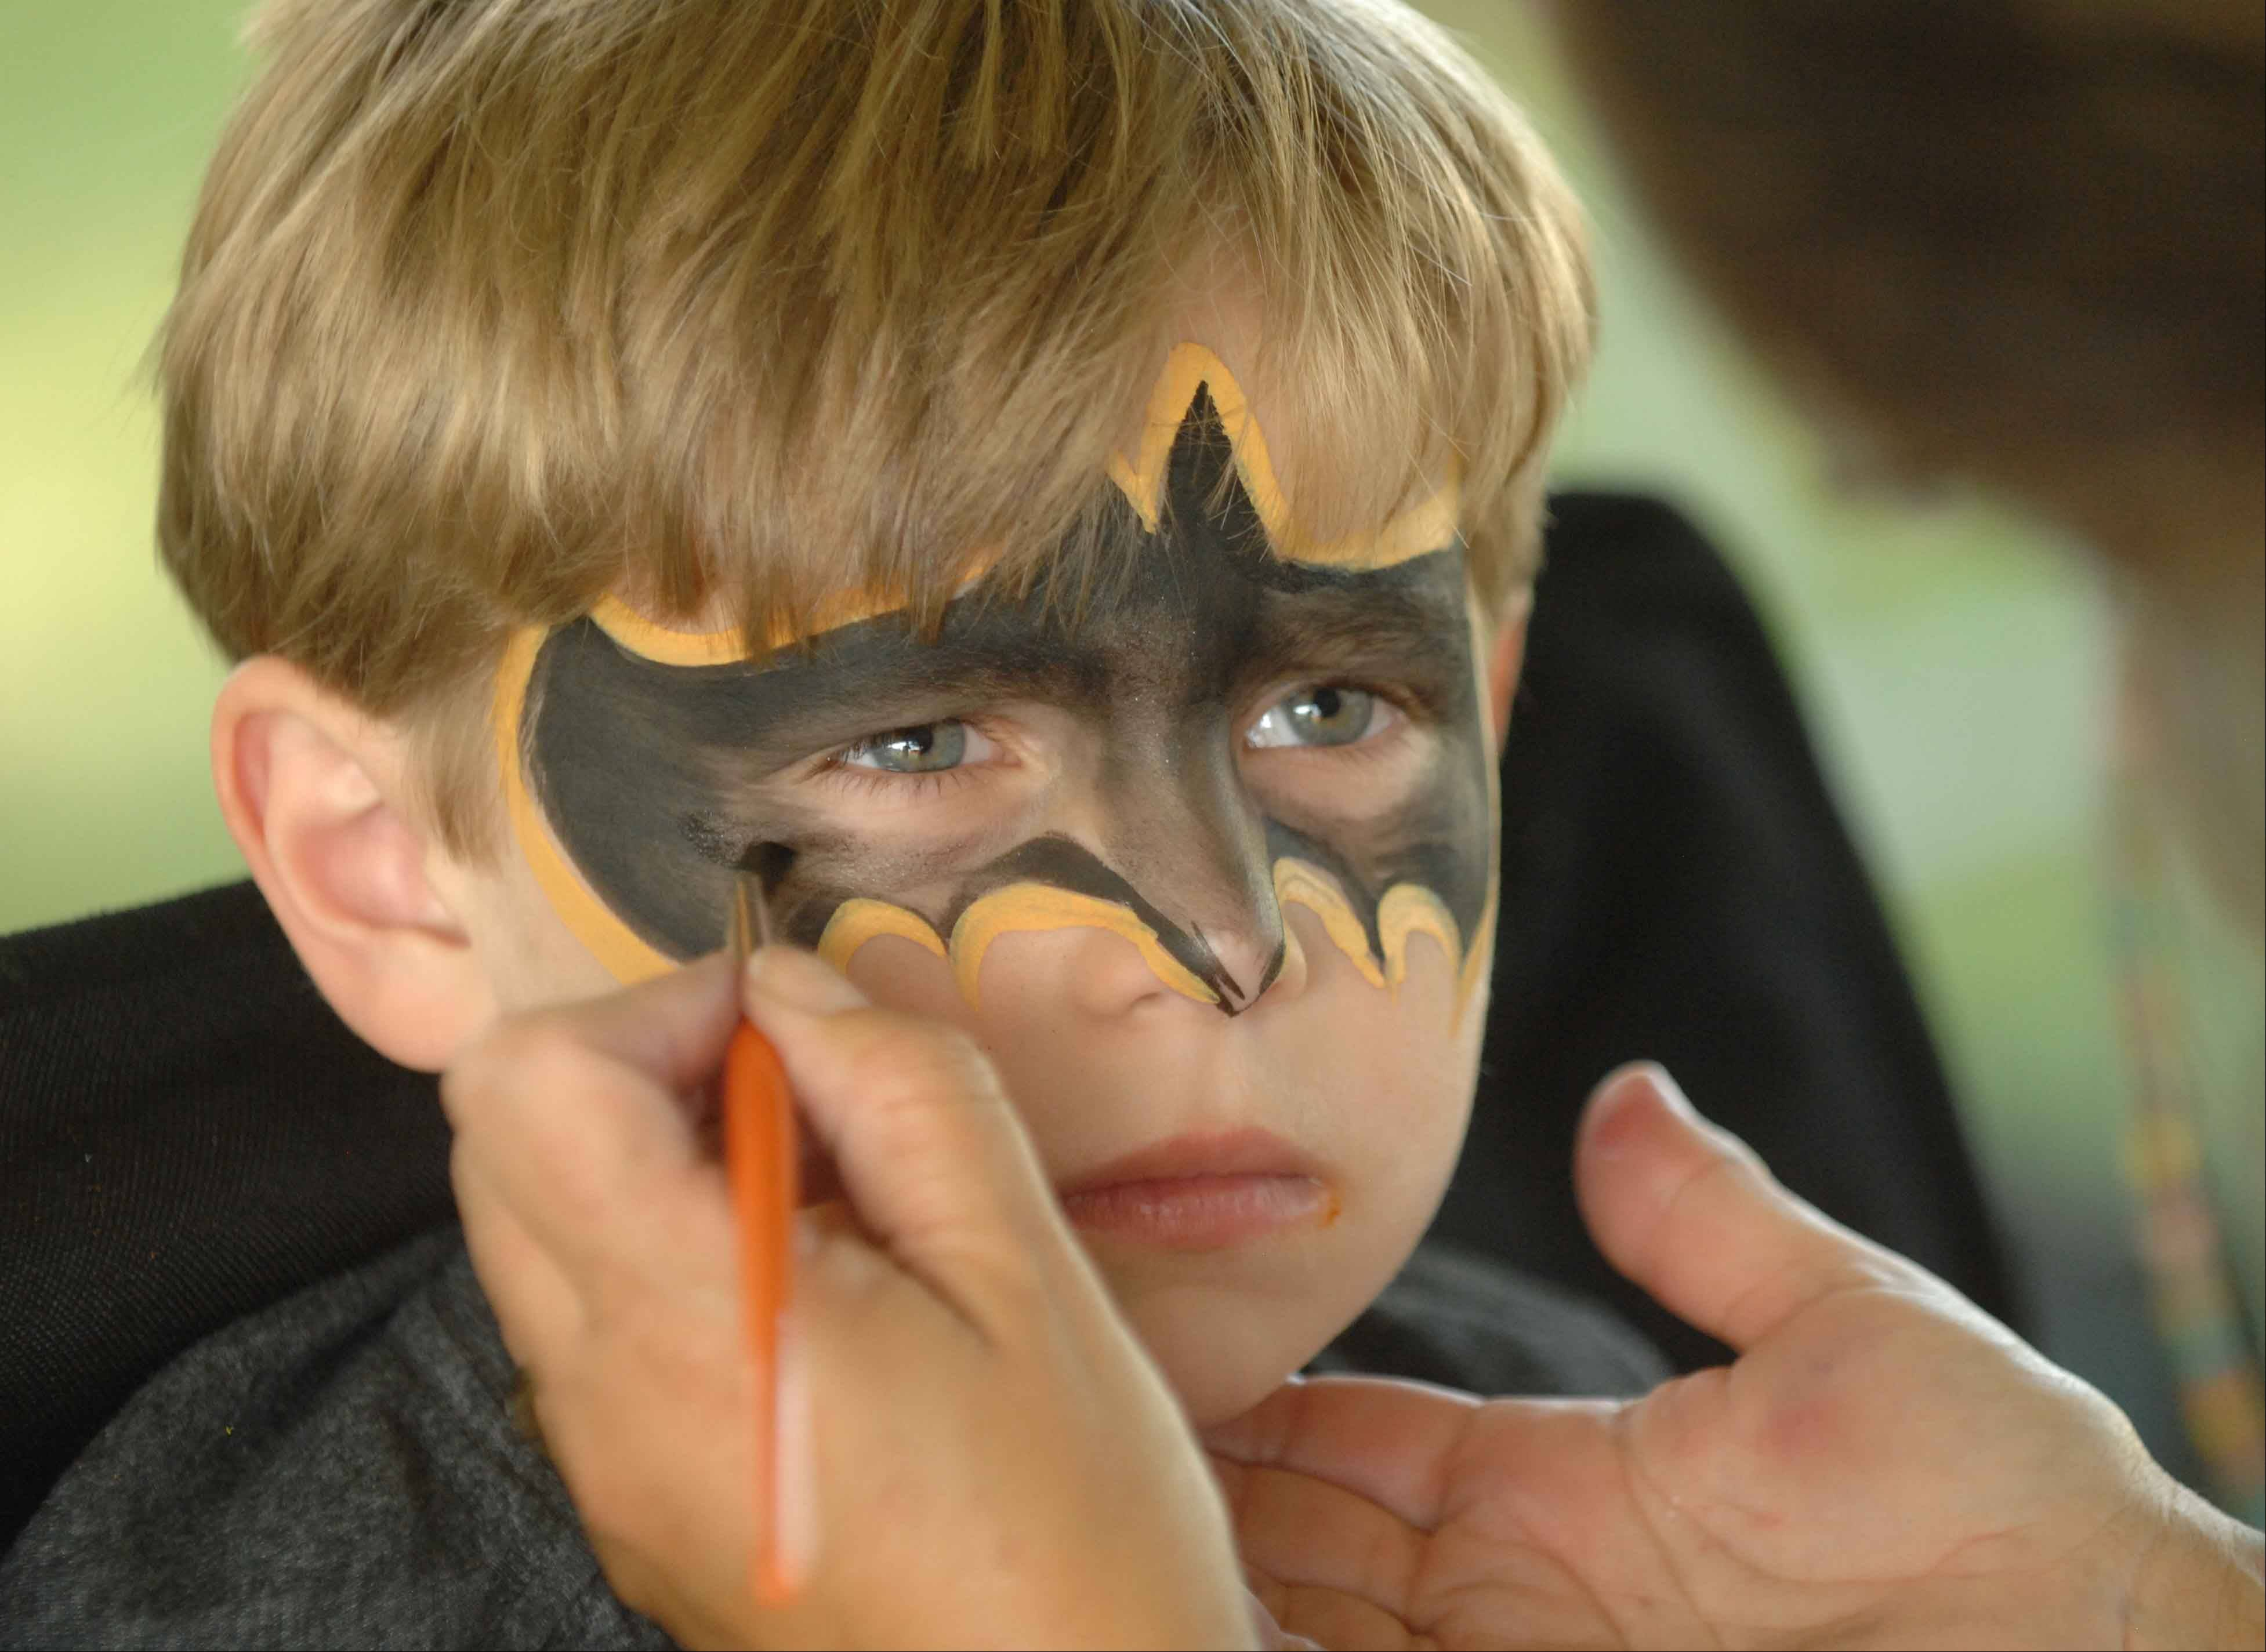 Dominic Esposito,4, of Itasca, gets a Batman-style mini makeover during Itasca Fest at Washington Park Thursday. The fest runs through the weekend and offers fun and games for all ages.